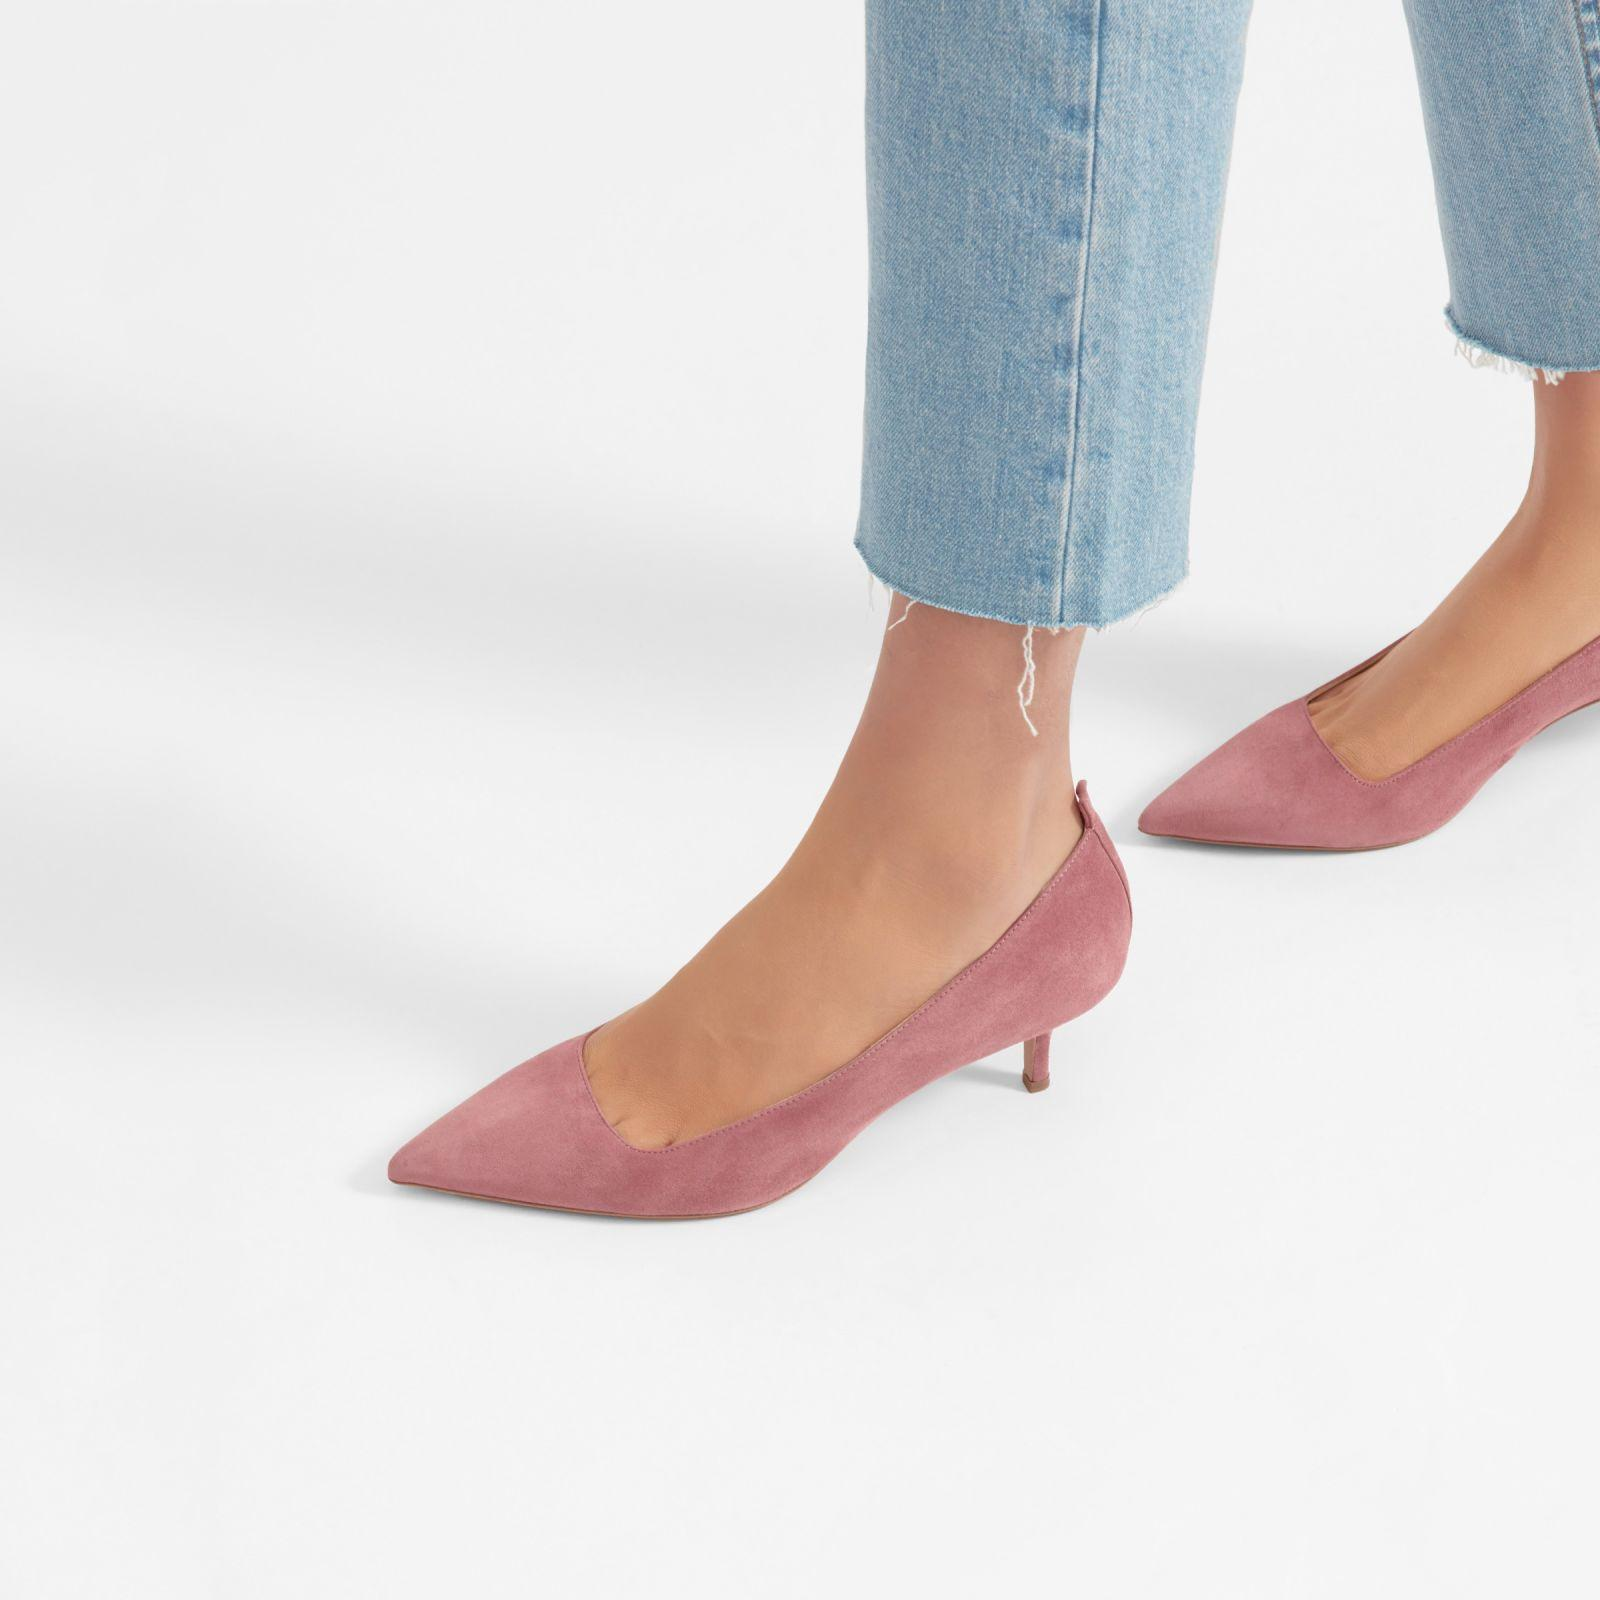 0ea6e367c8 Everlane - Multicolor The Editor Heel - Lyst. View fullscreen